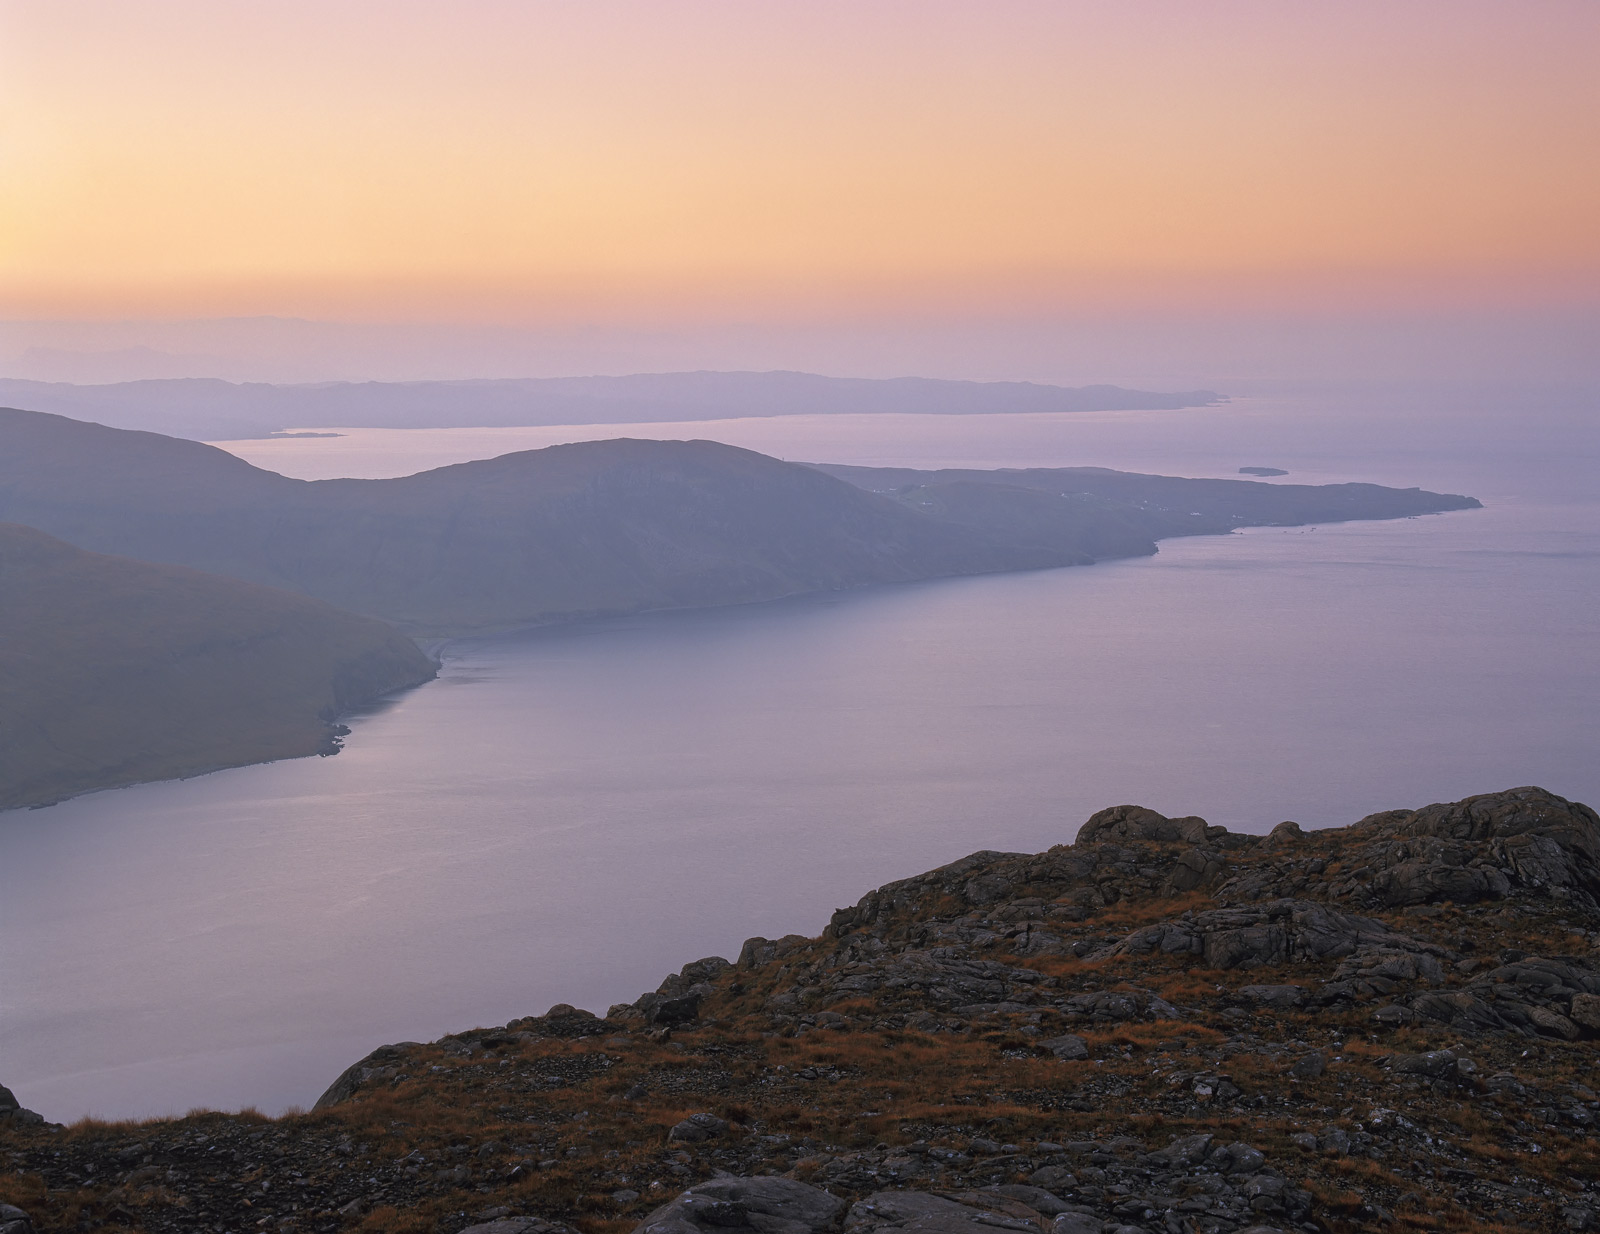 A supreme moment of tranquility just prior to sunrise from the top of Sgurr Na Str on Skye. The previous night had been...